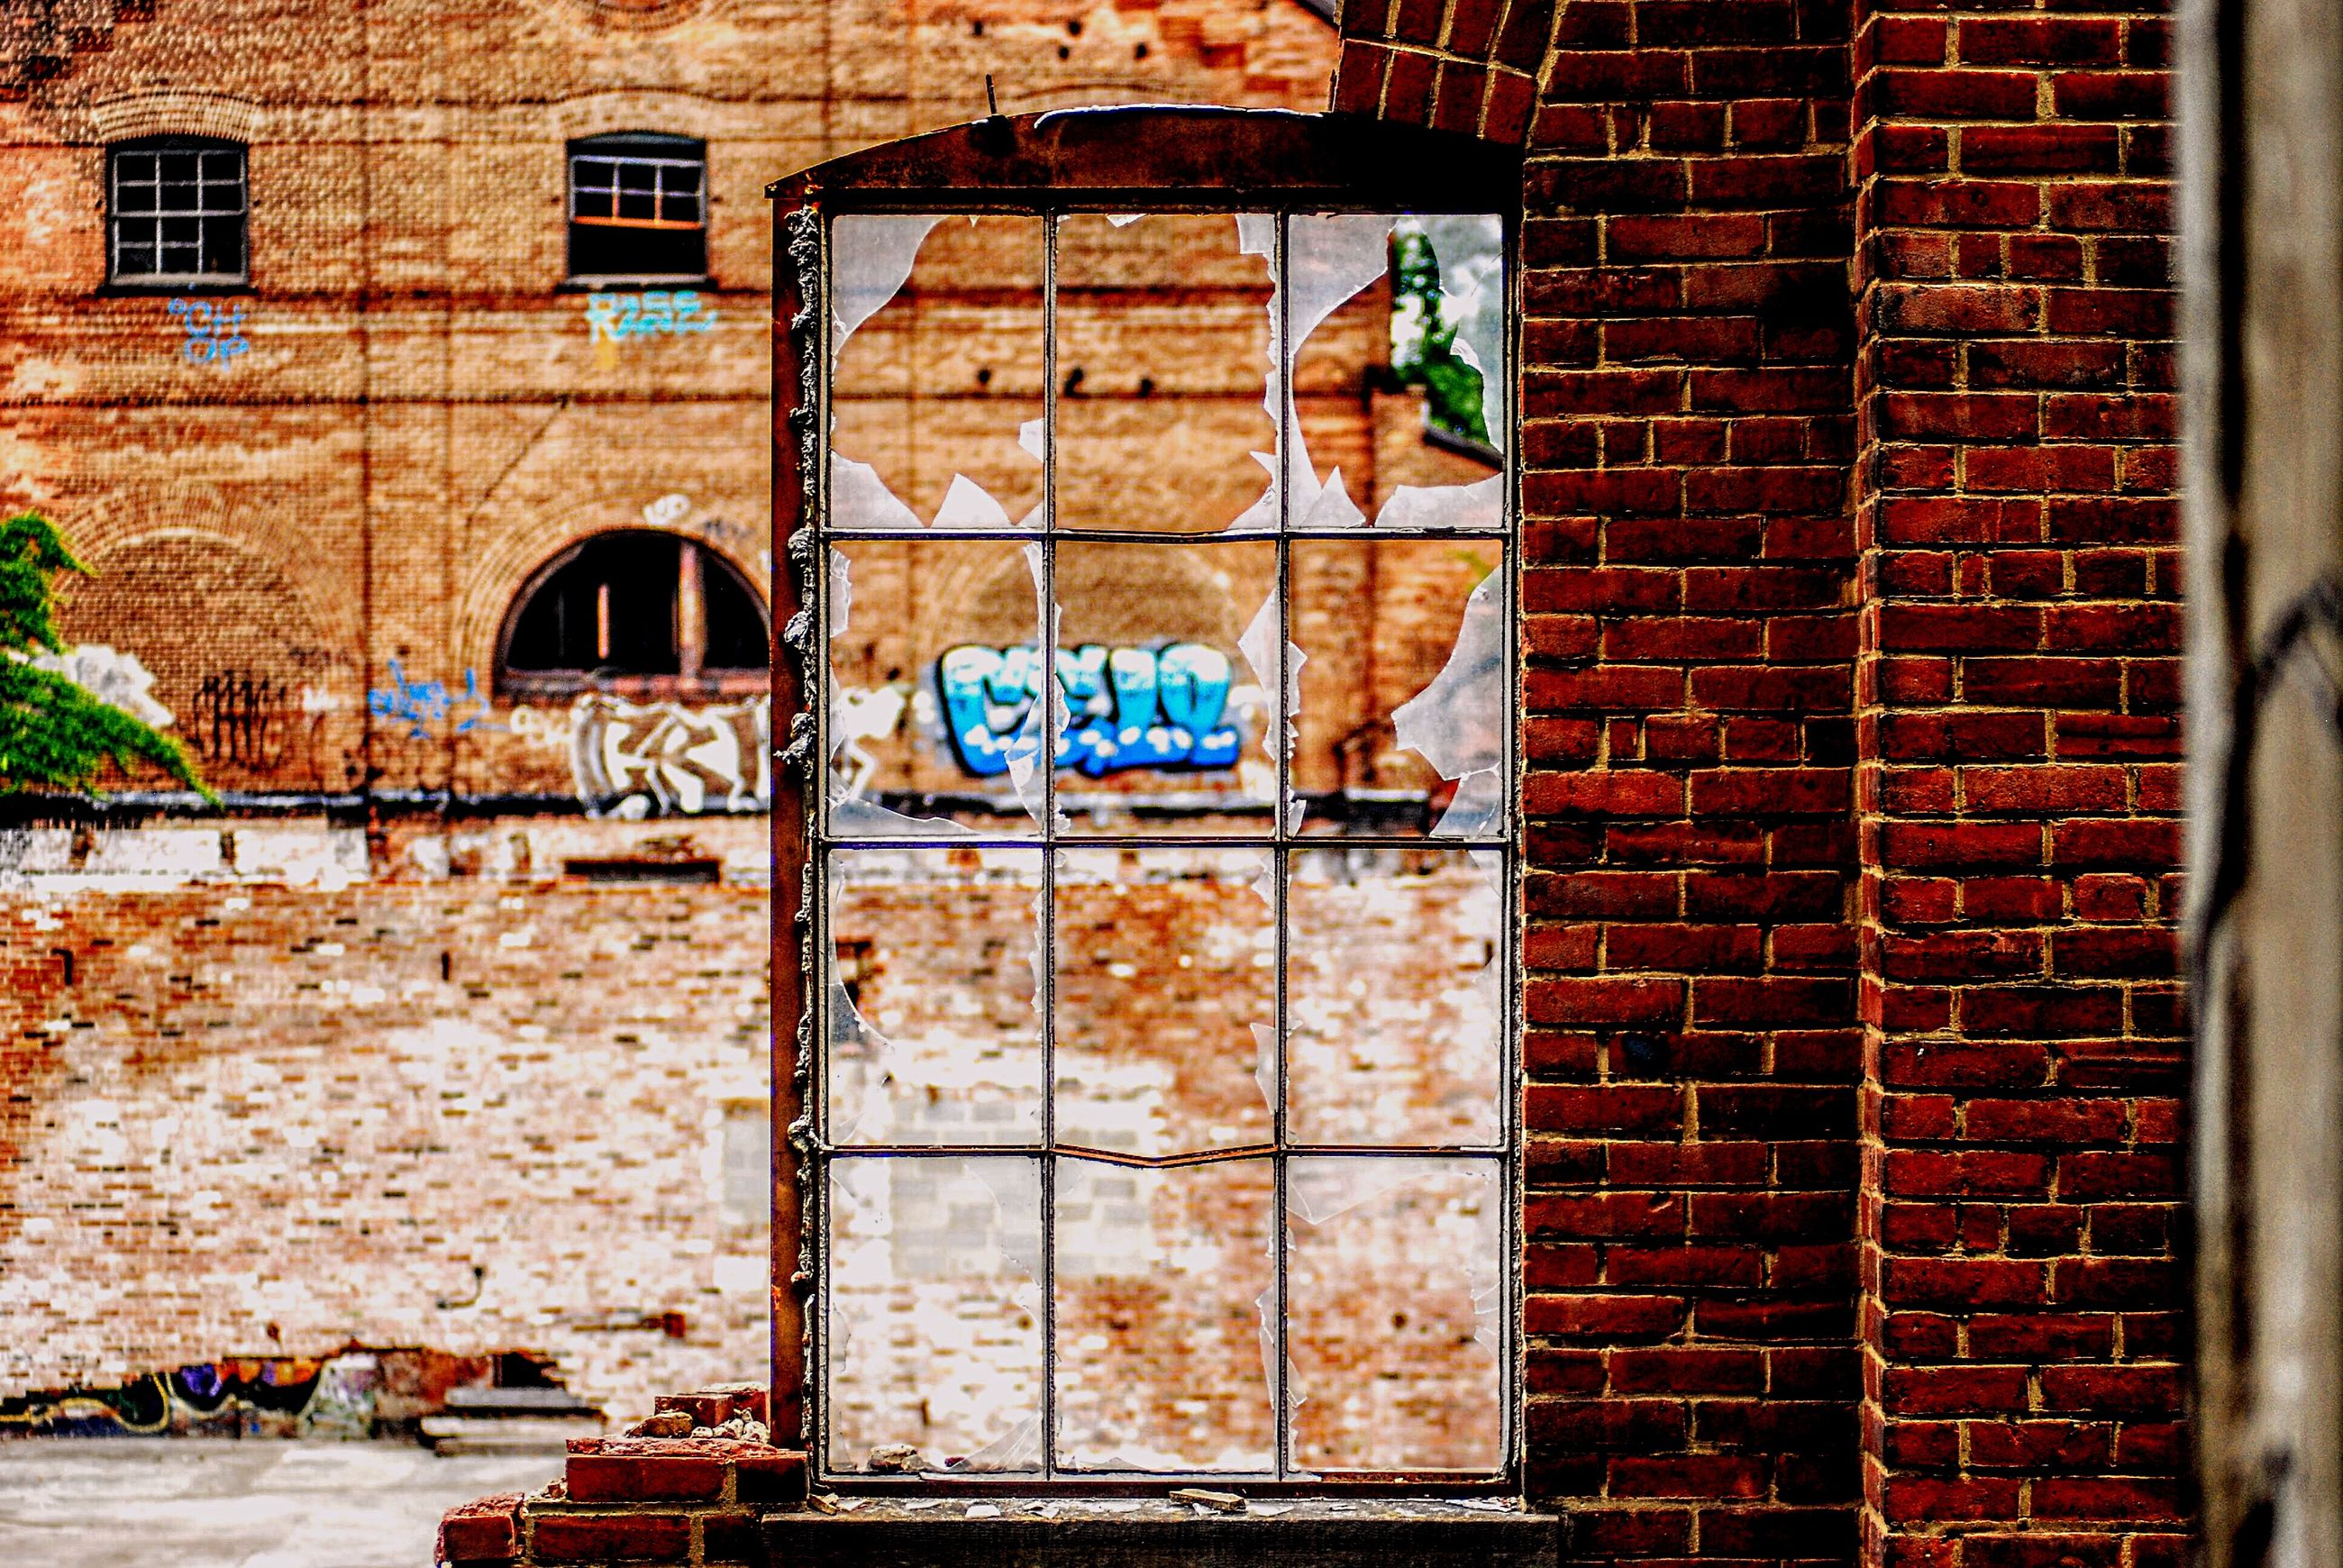 architecture, building exterior, built structure, brick wall, window, communication, text, outdoors, day, no people